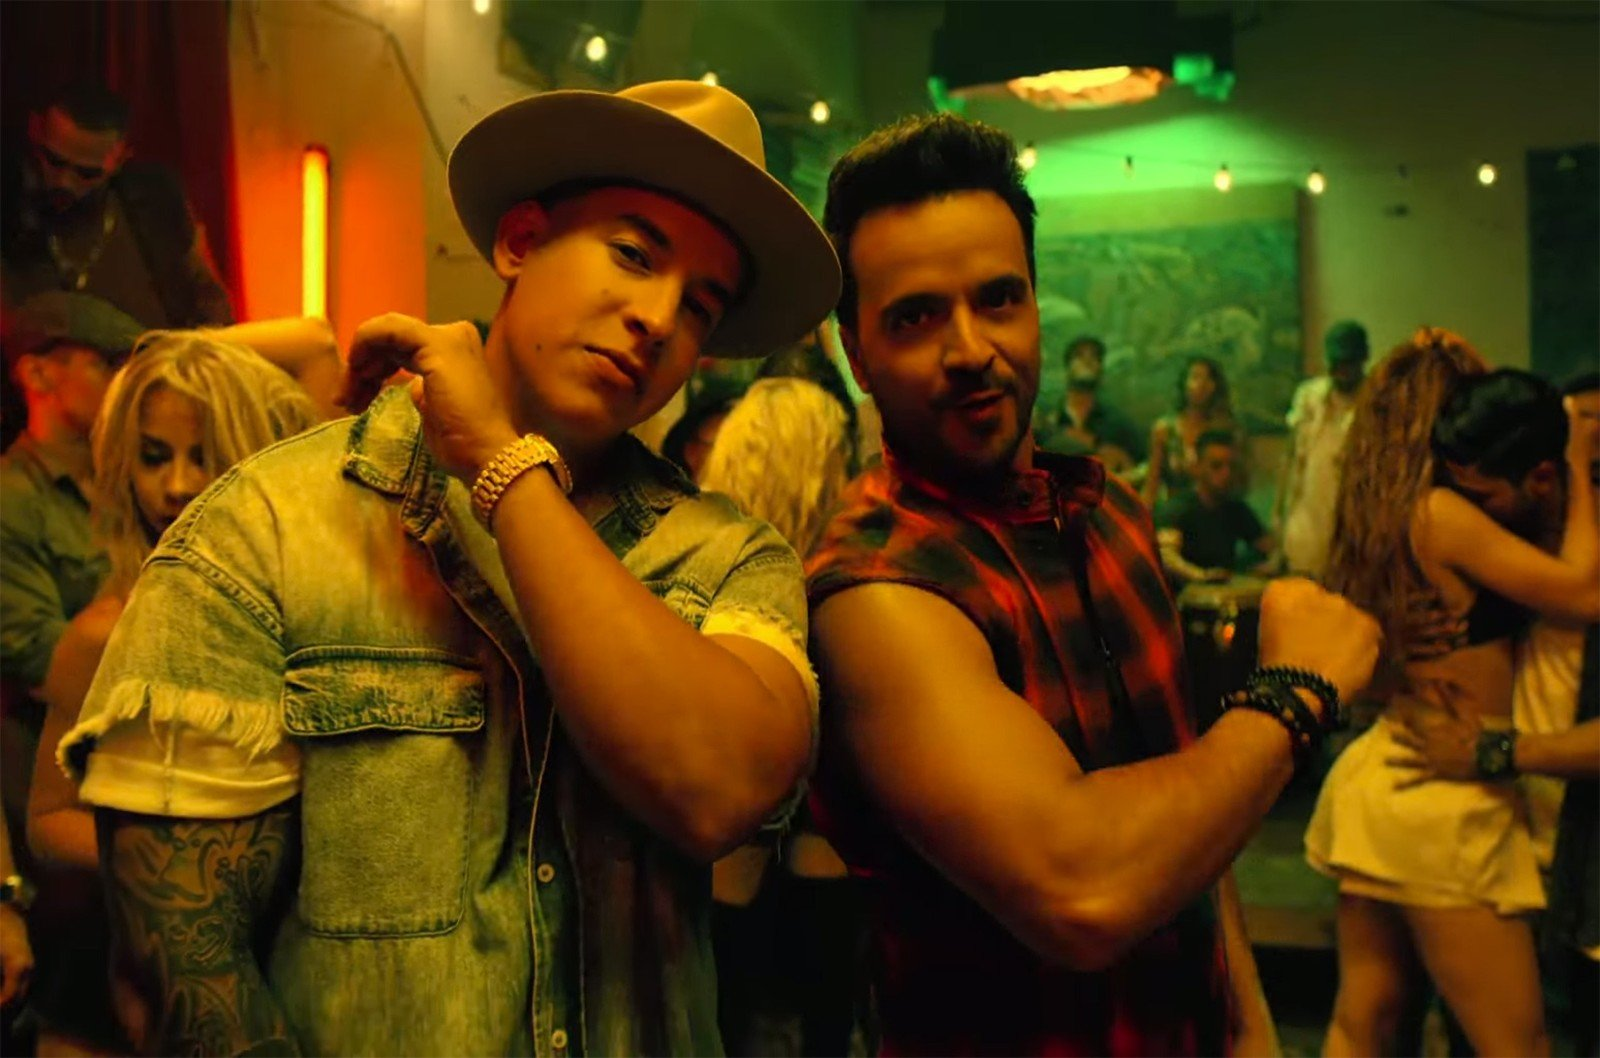 'Despacito', vídeo mais visto na história do Youtube, sai do ar após ser modificado por hackers